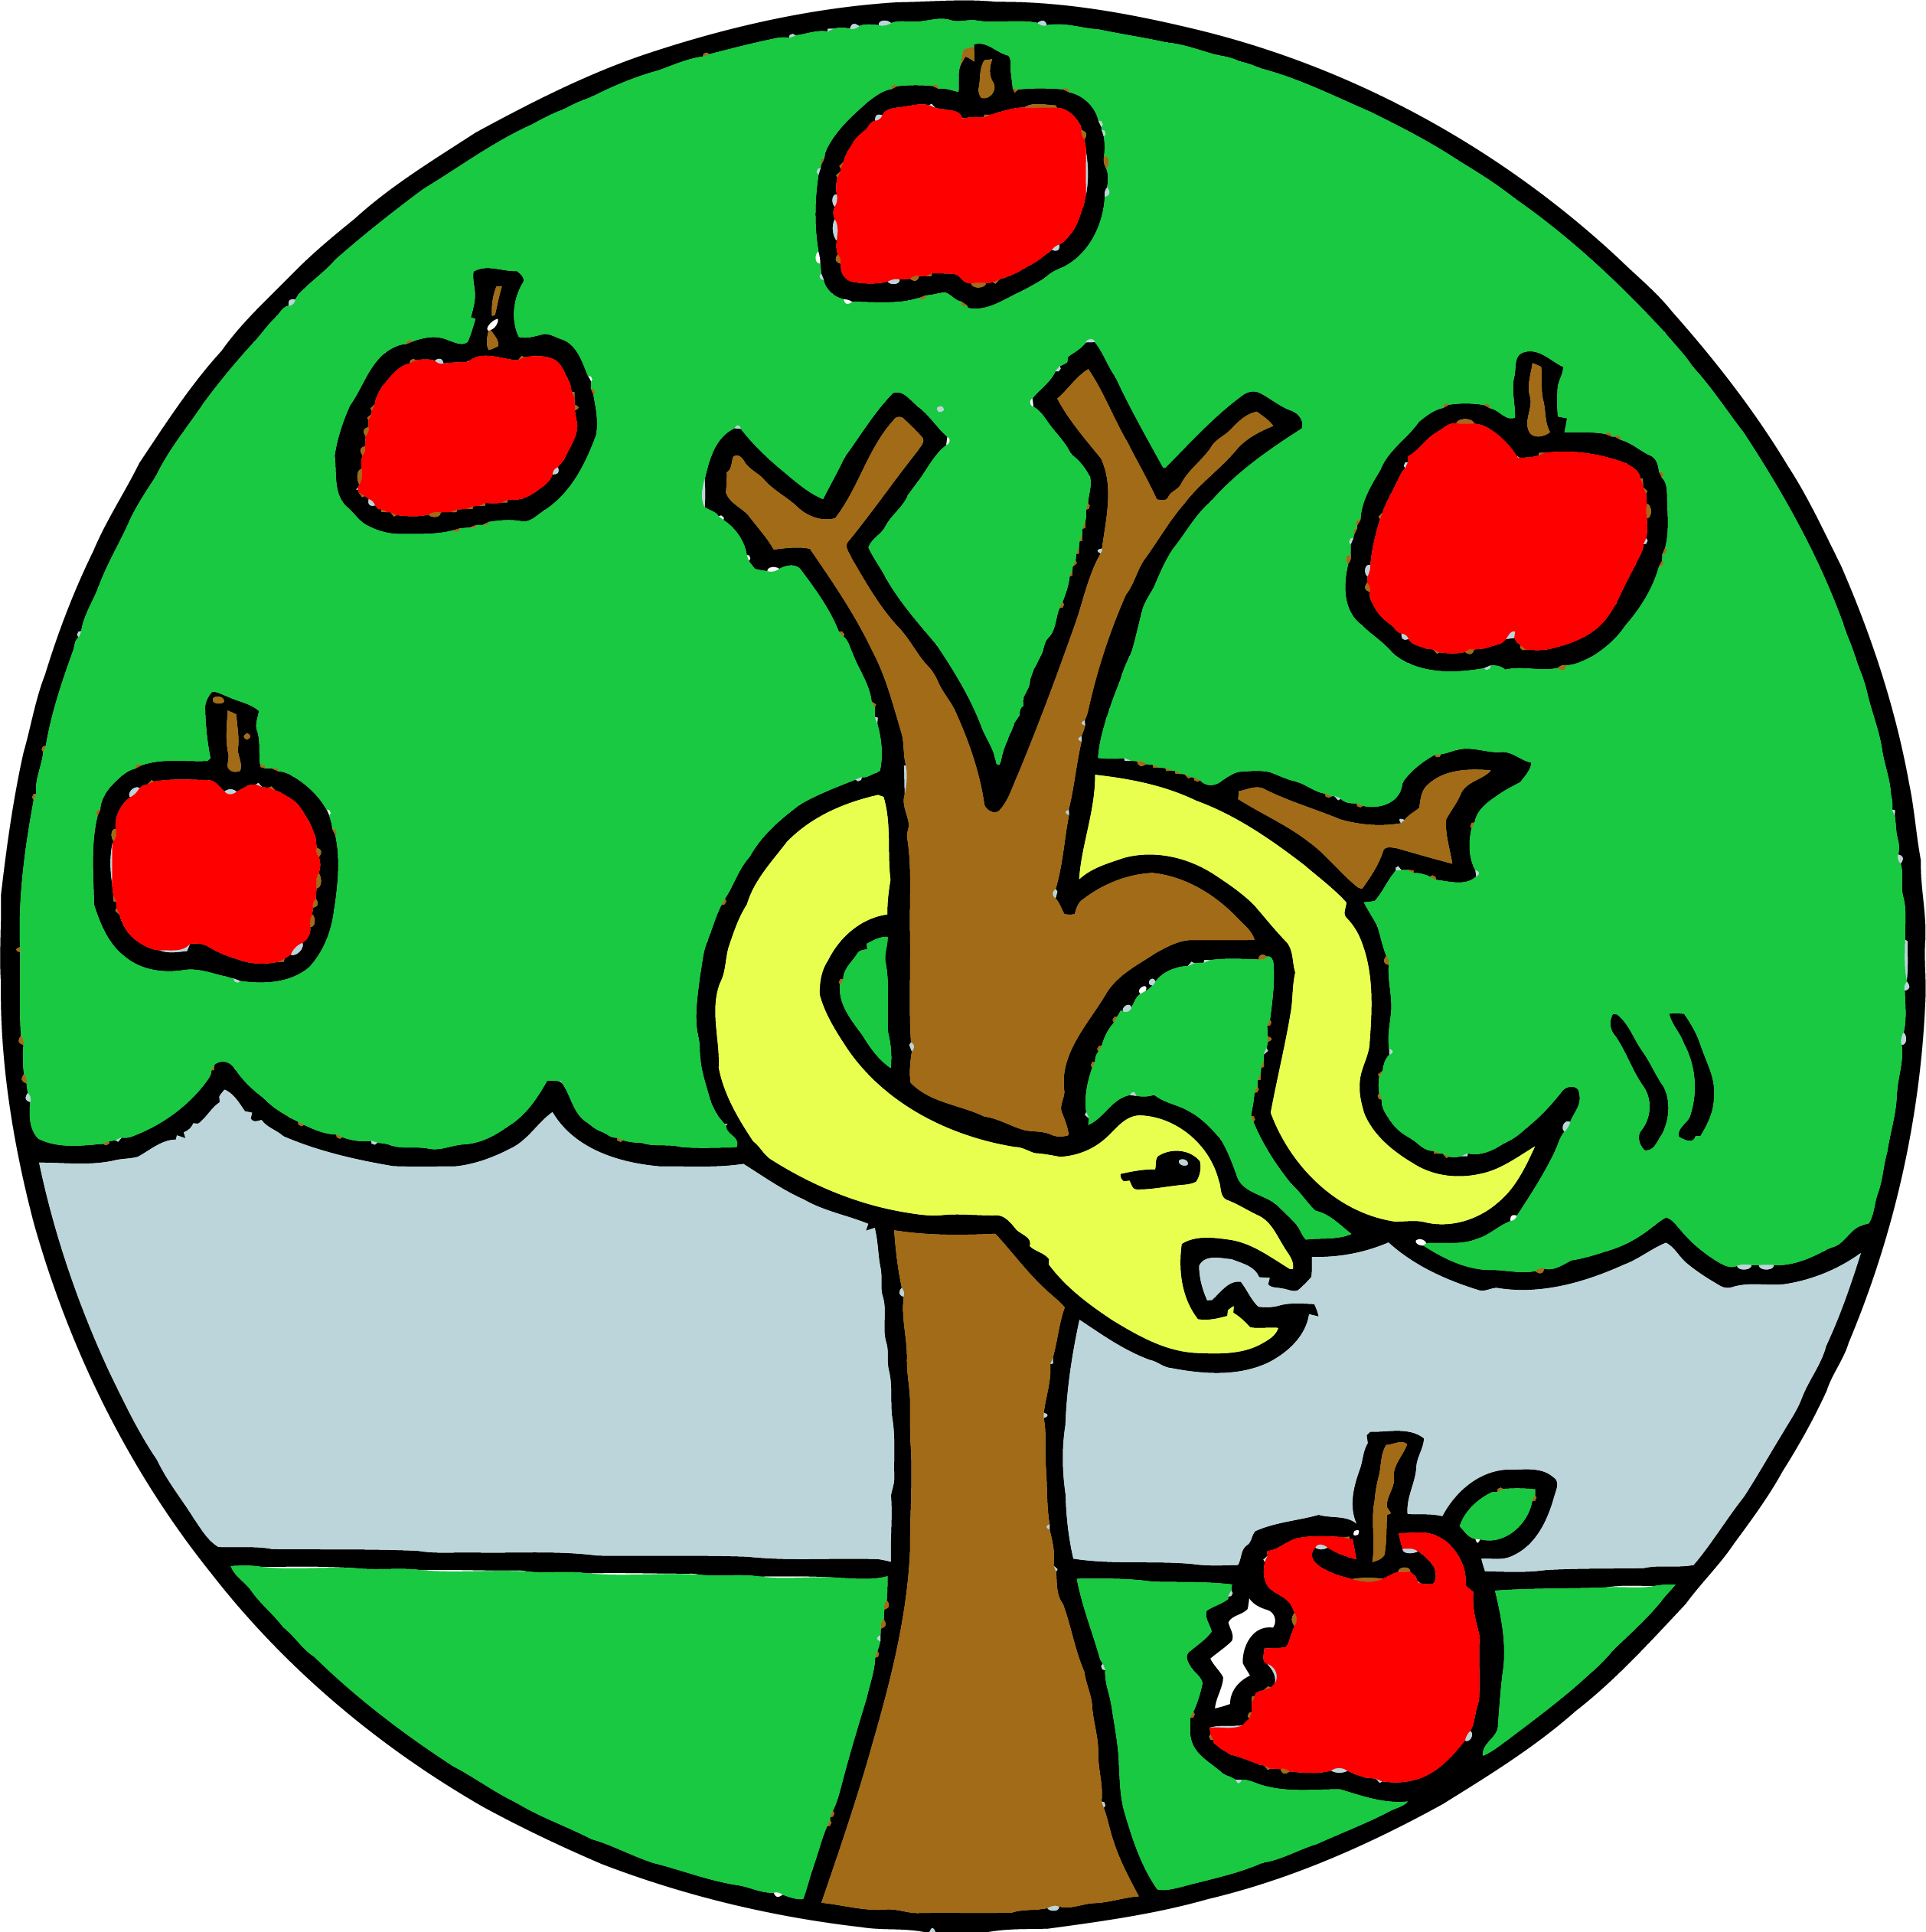 snakes clipart apple